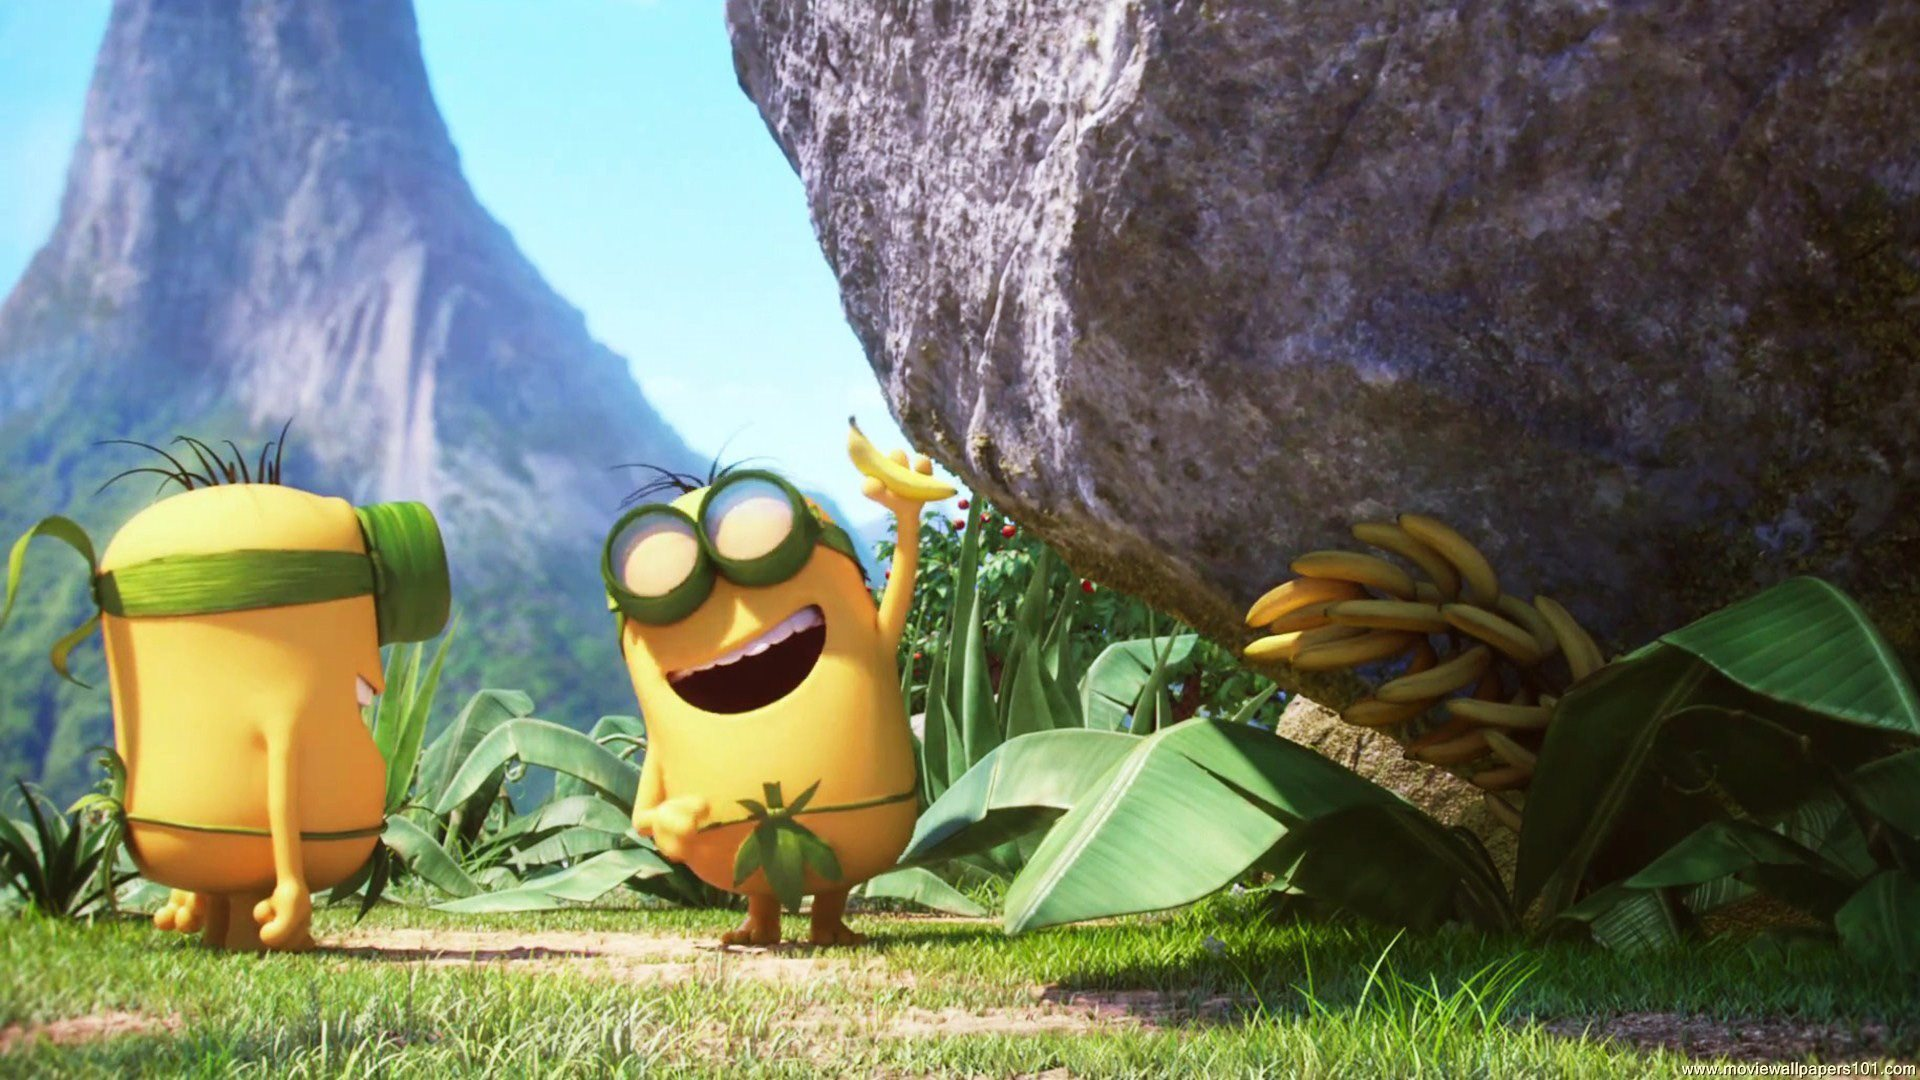 Download Minions Movie Cartoons HD Wallpaper Search More High 1920x1080